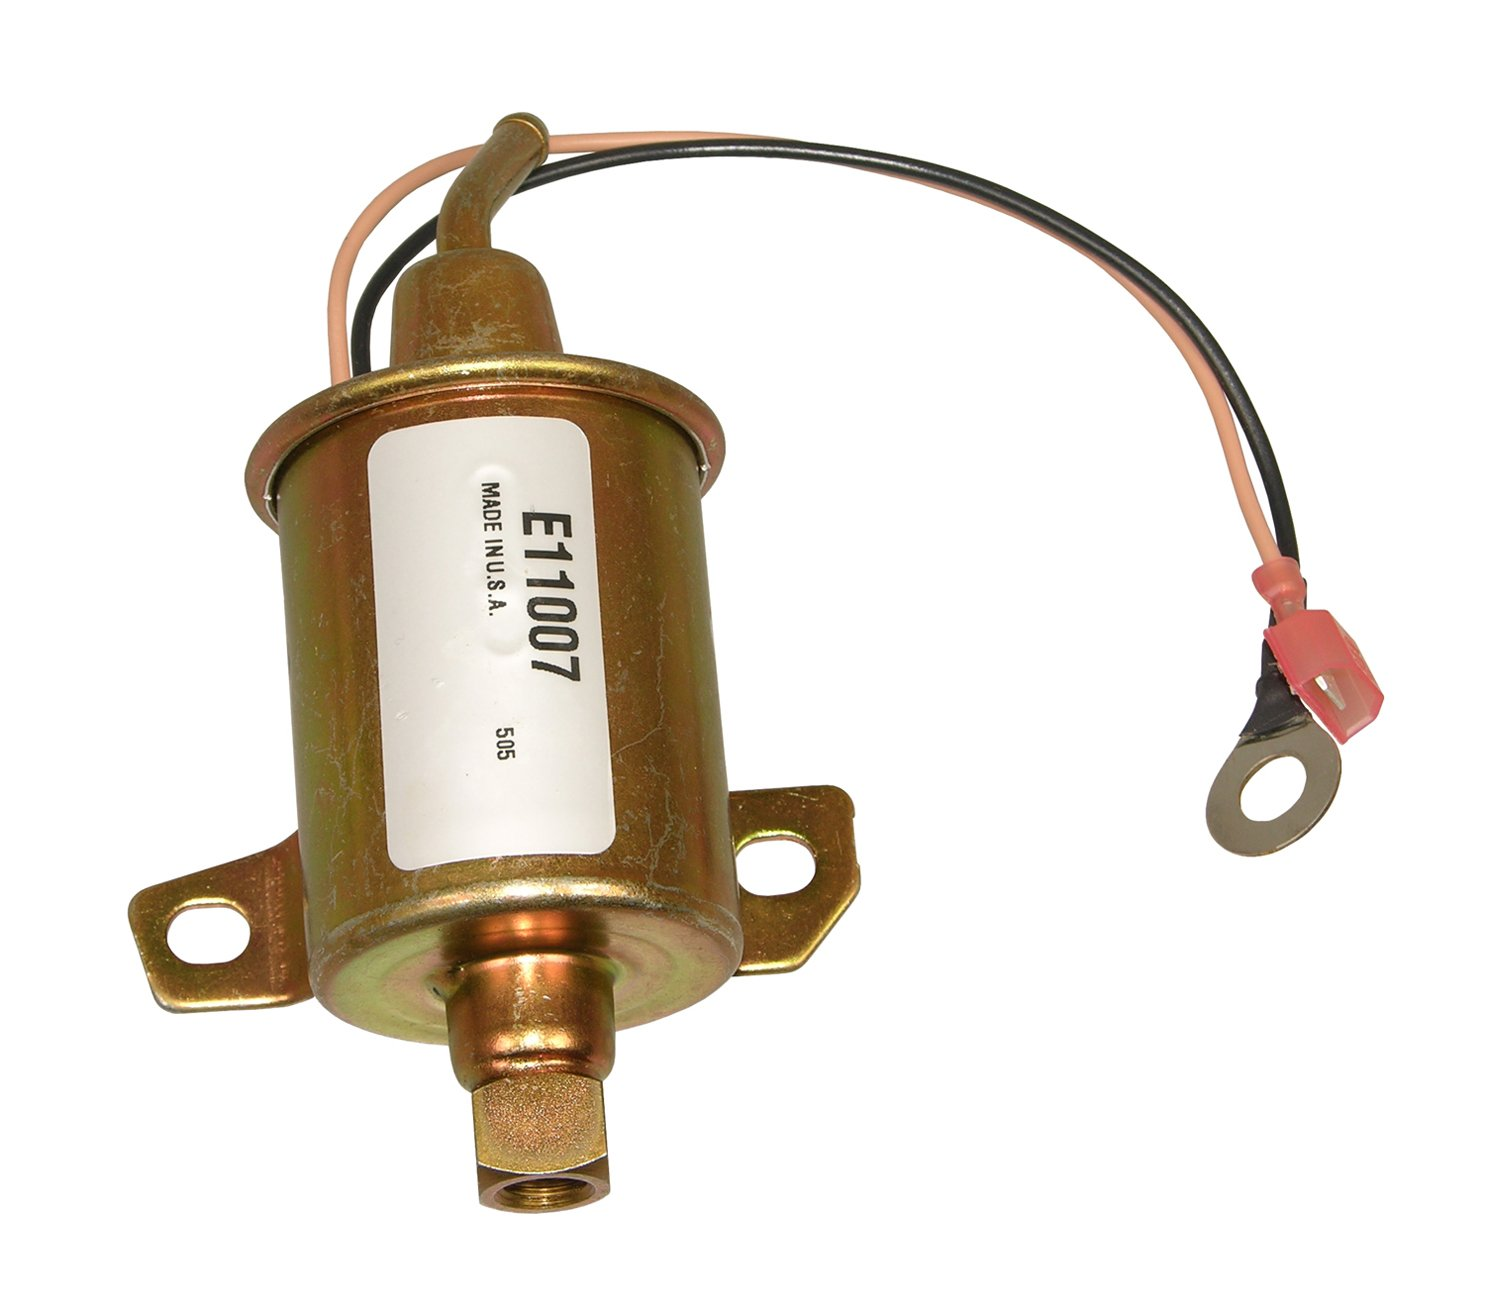 Onan Generator 4000 Schematic Onan Microlite 4000 Wiring: Best Rated In Automotive Replacement Electric Fuel Pumps